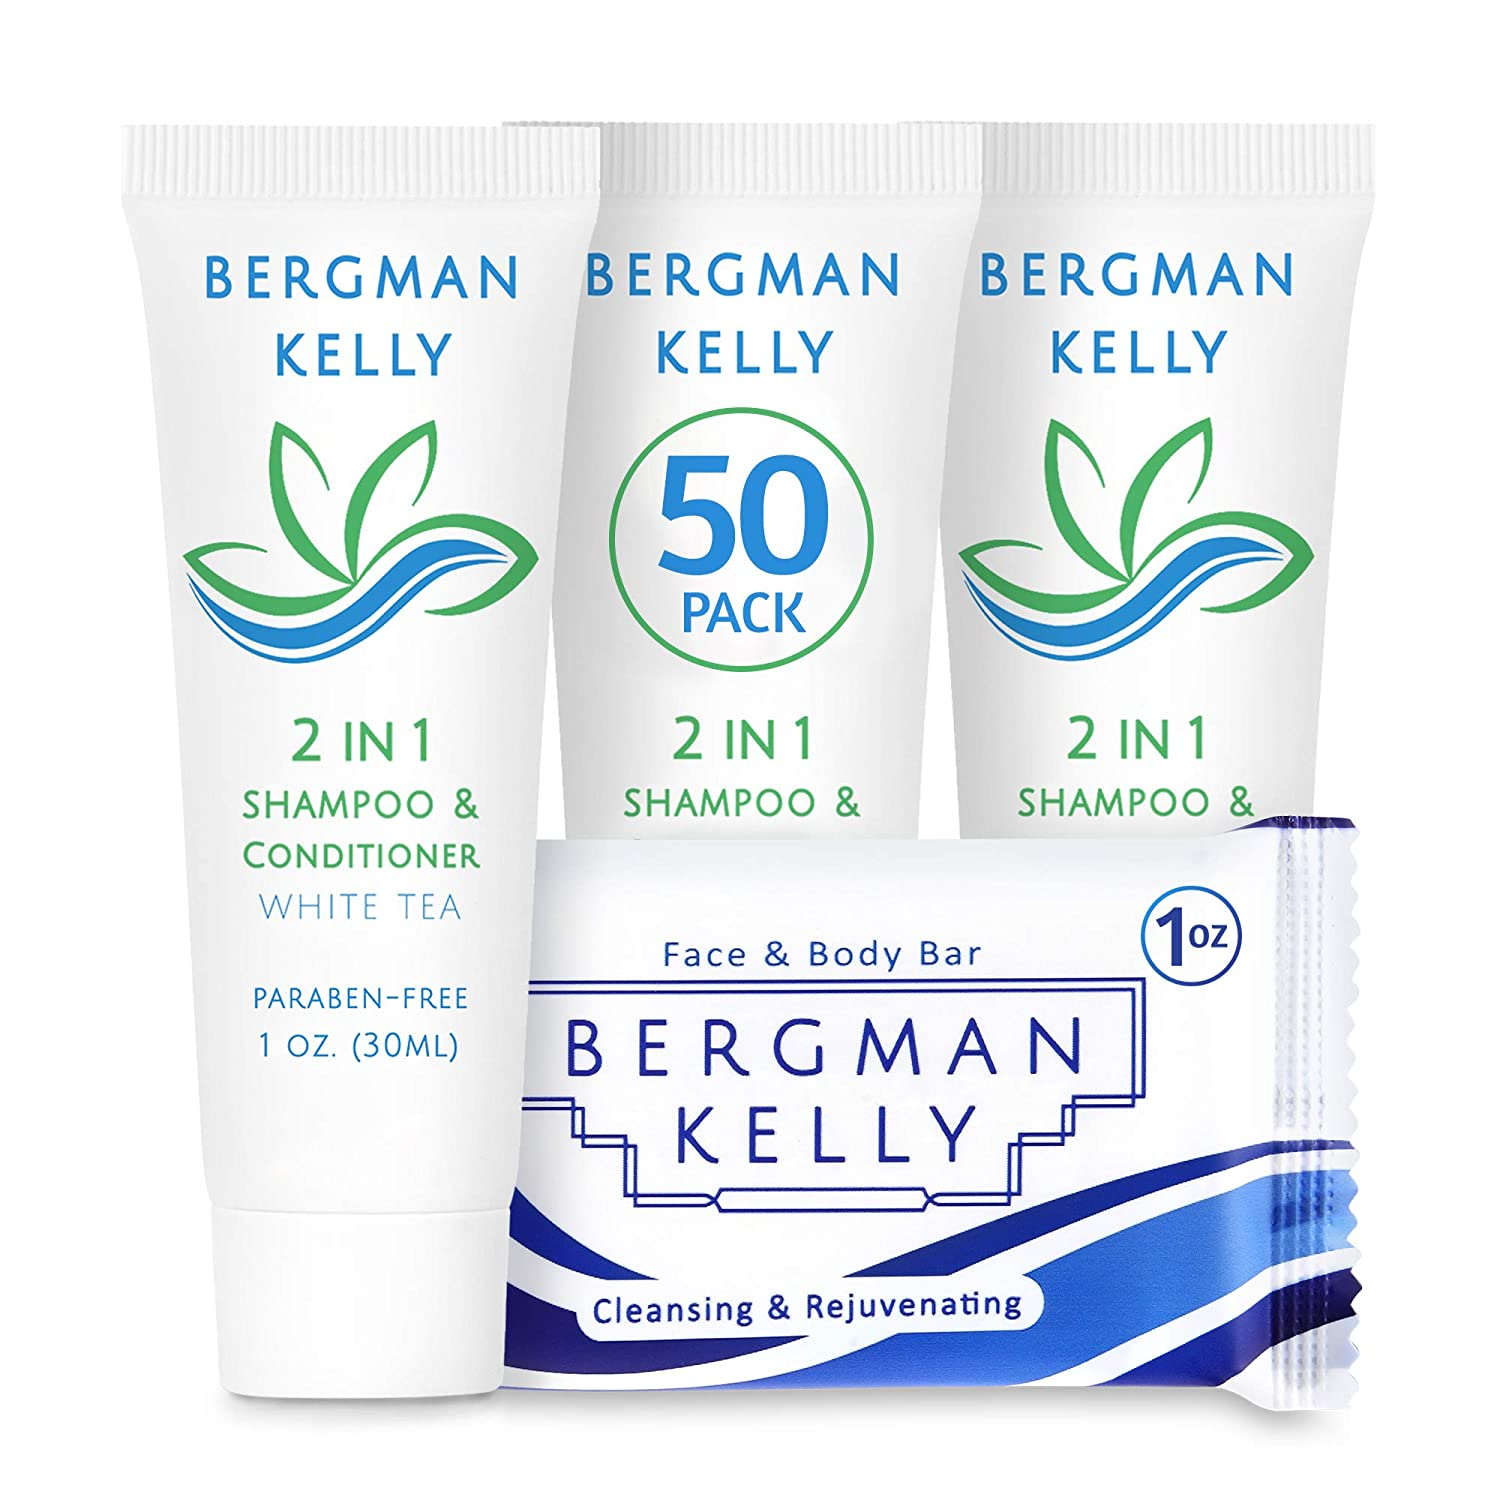 Bergman Kelly Toiletries Set